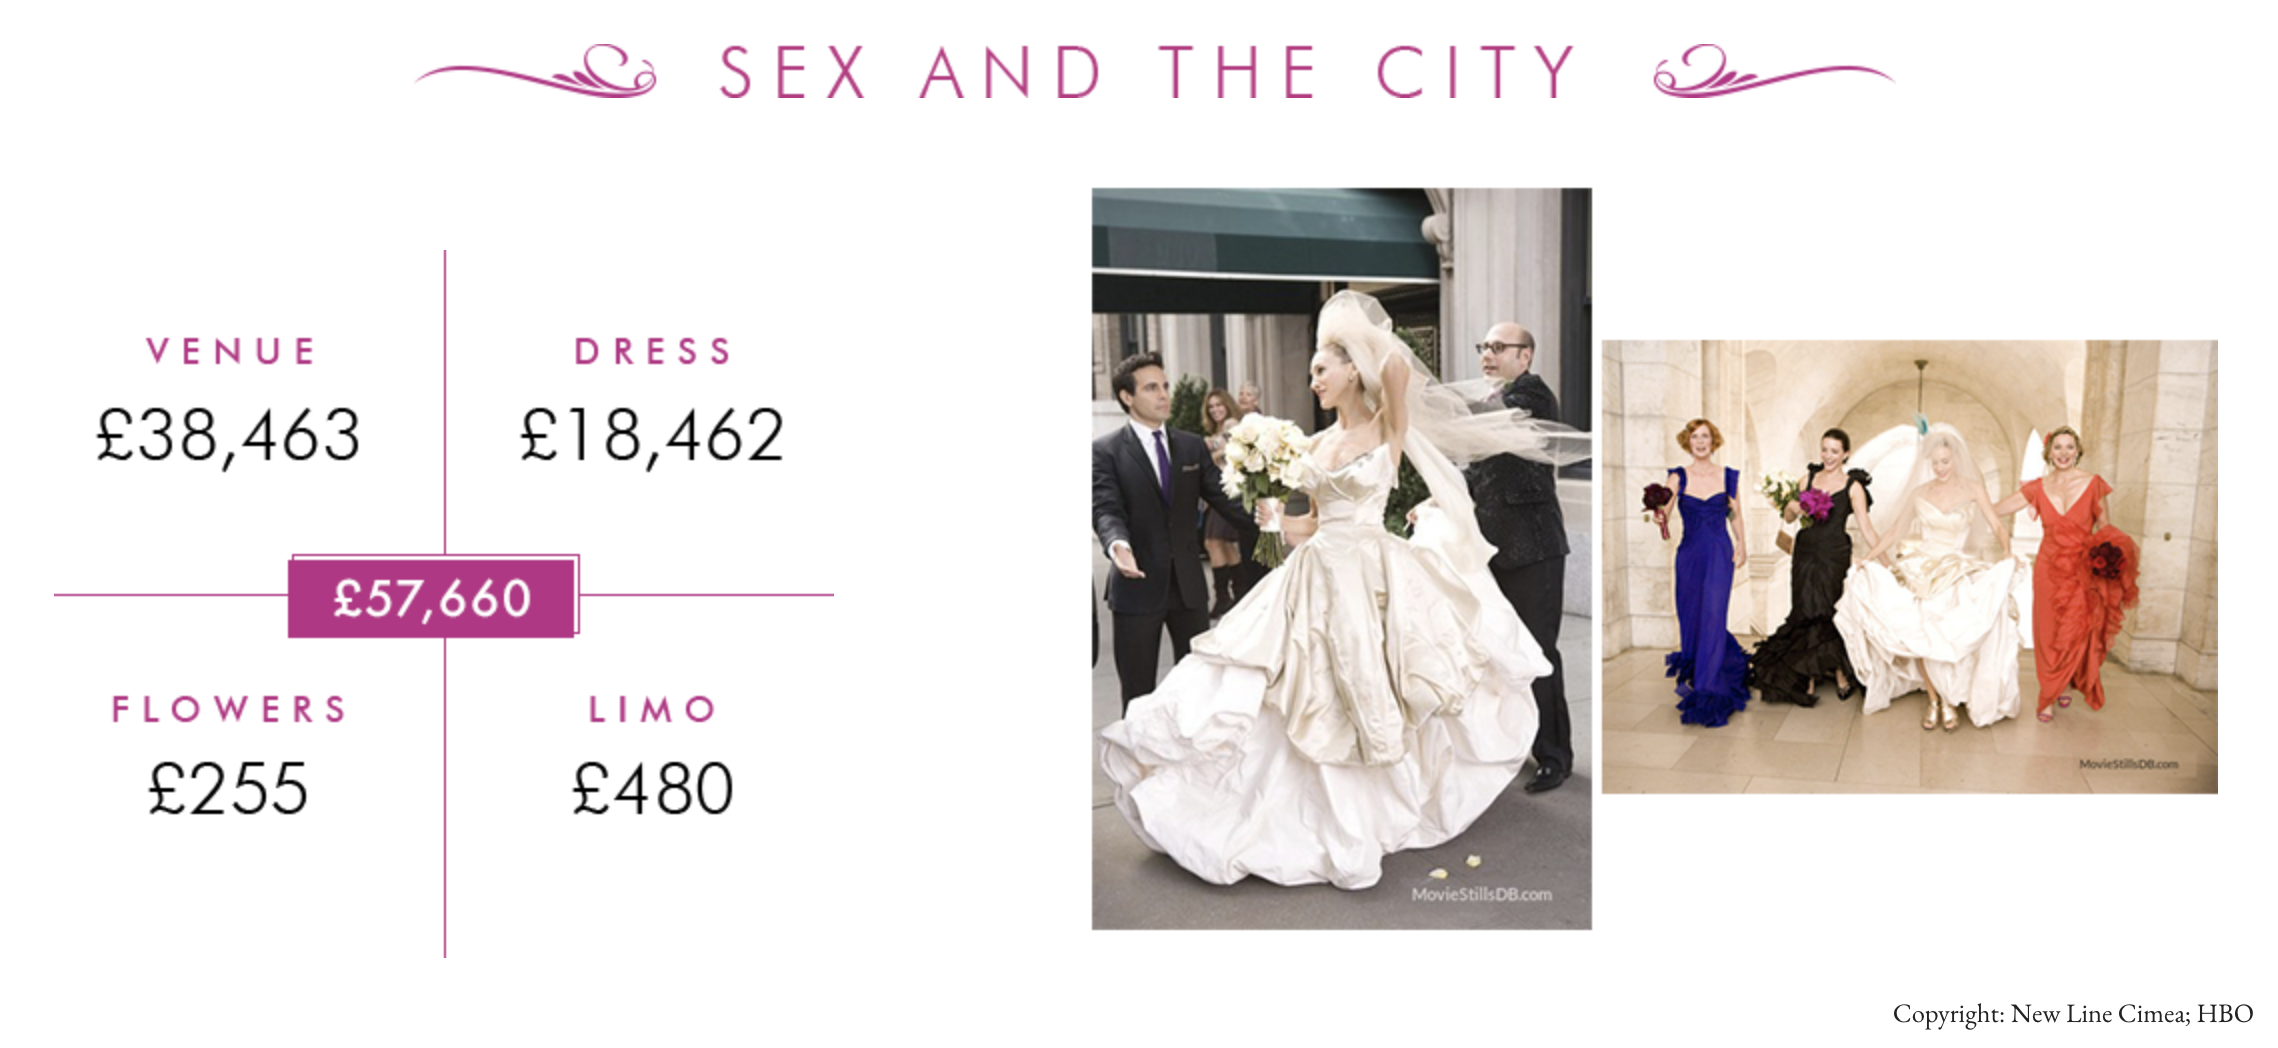 sex and the city movie wedding